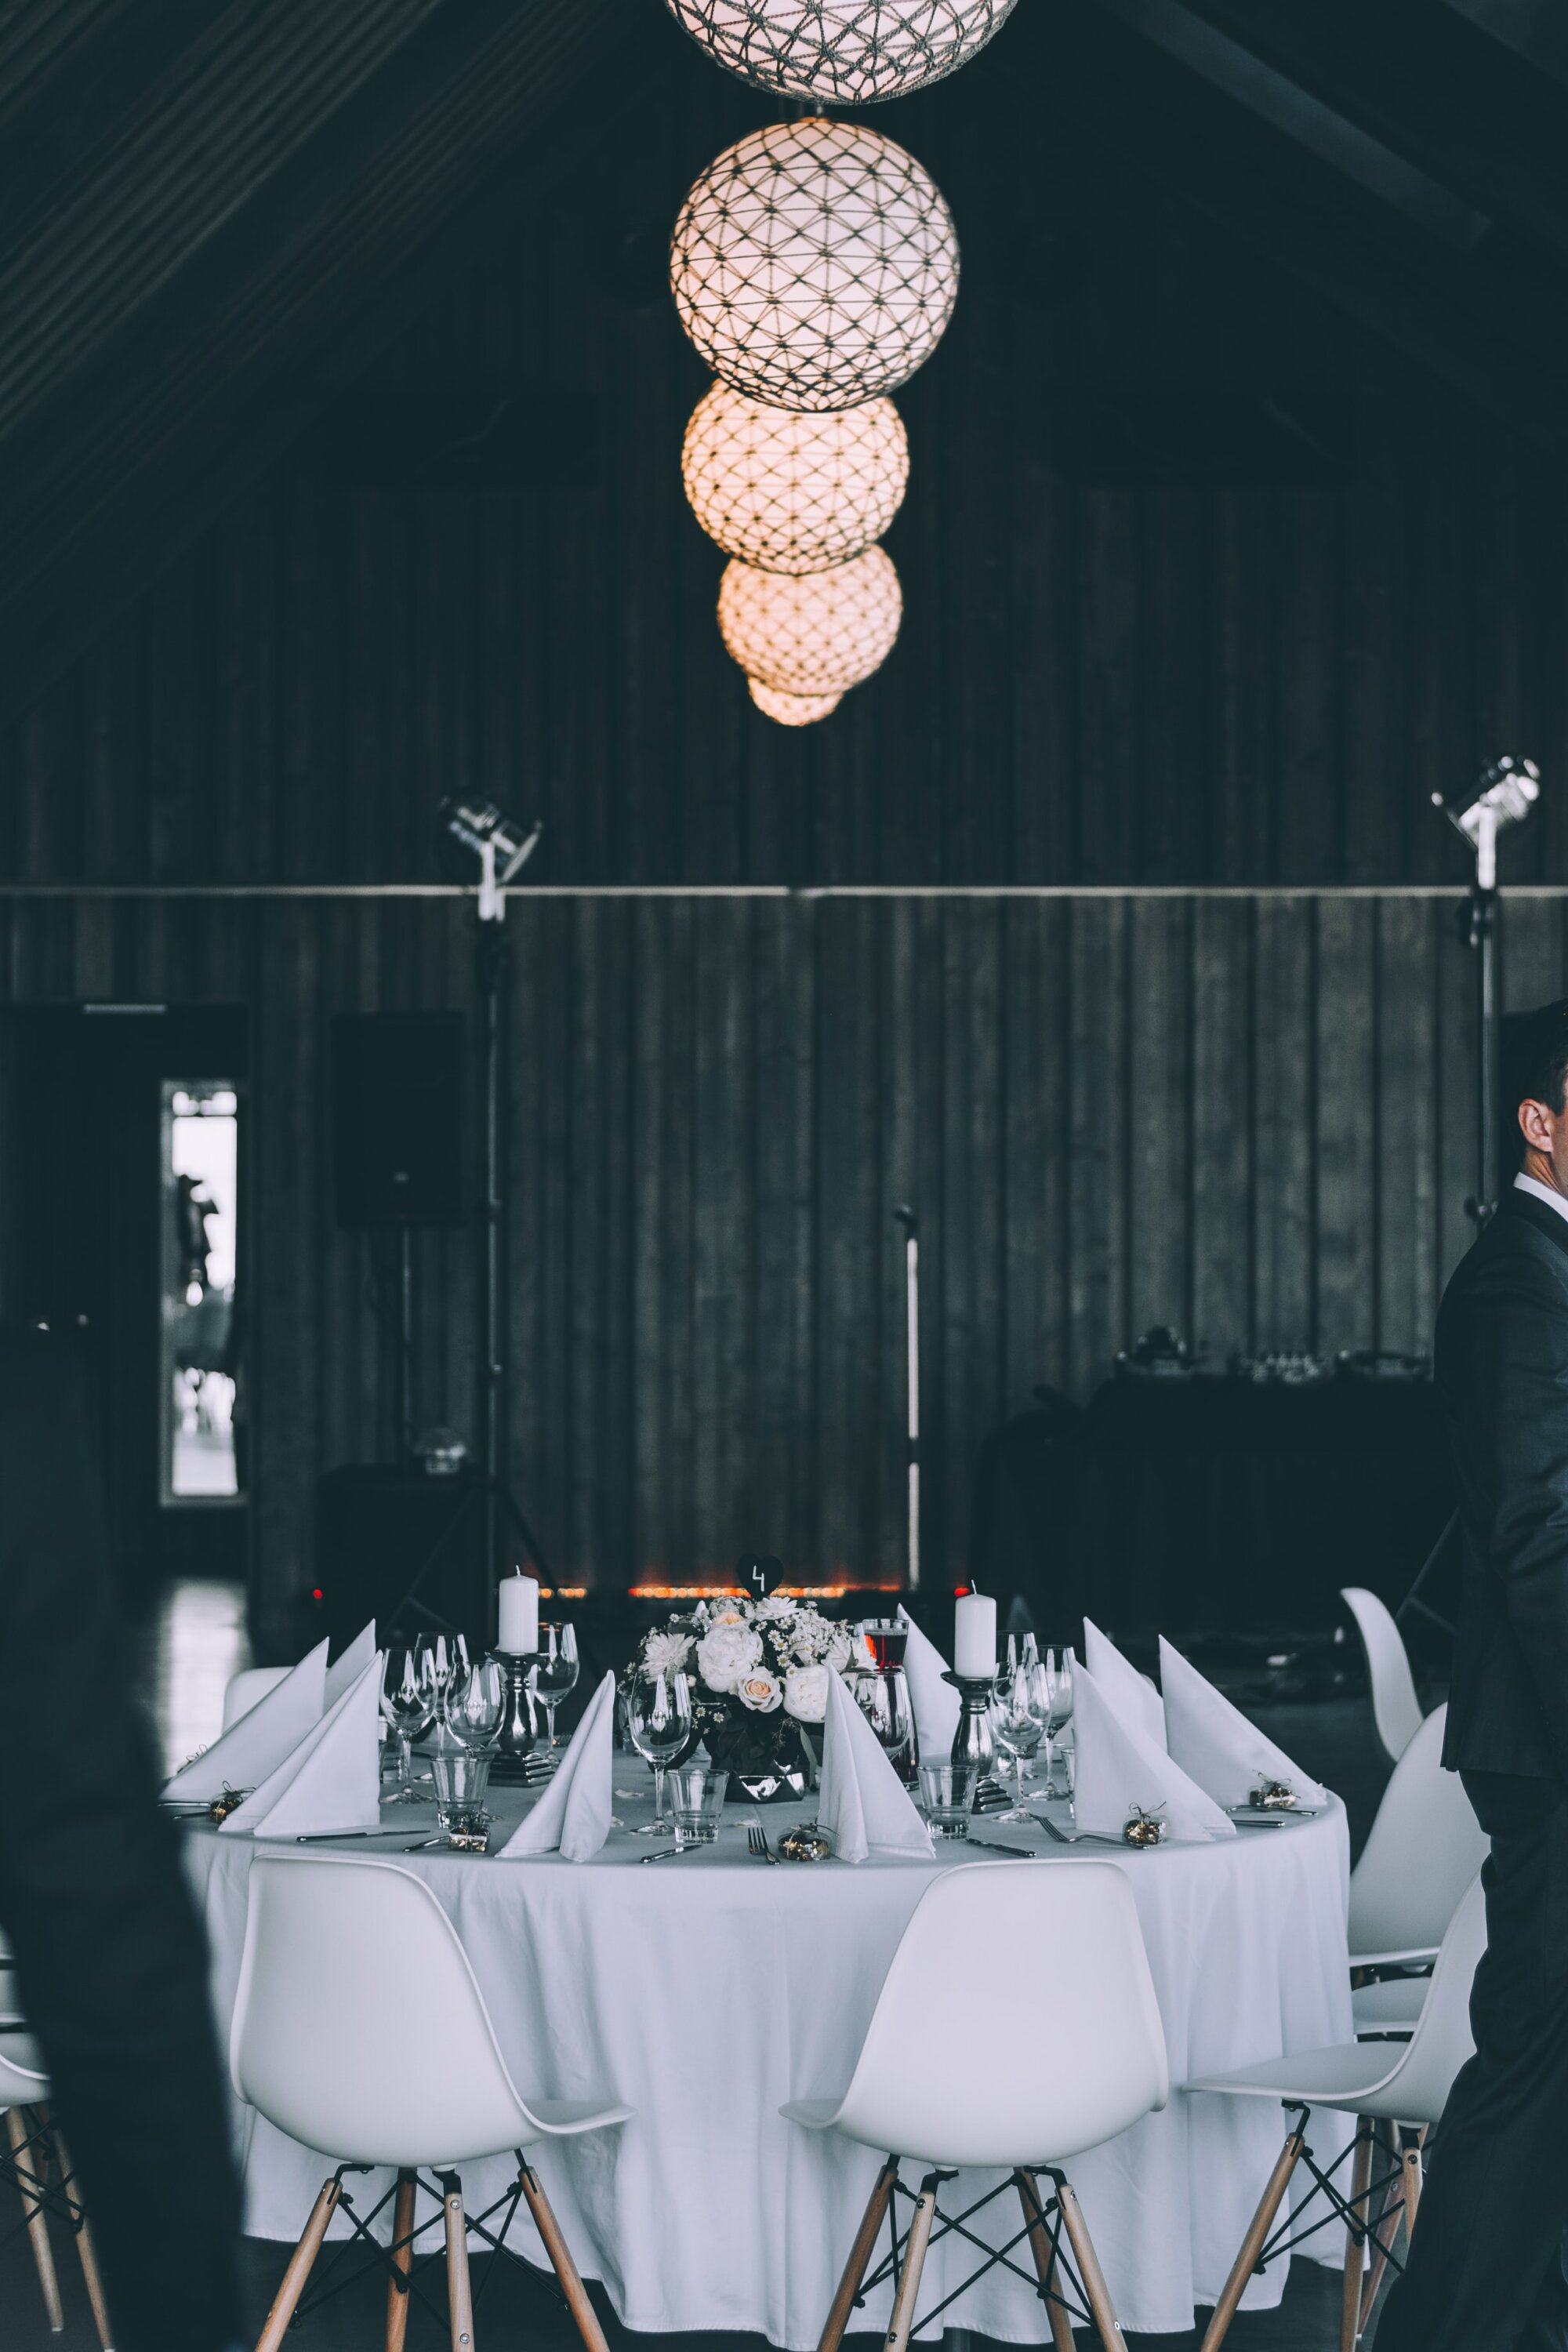 All-round kok – Art & Food Catering (Waasmunster)